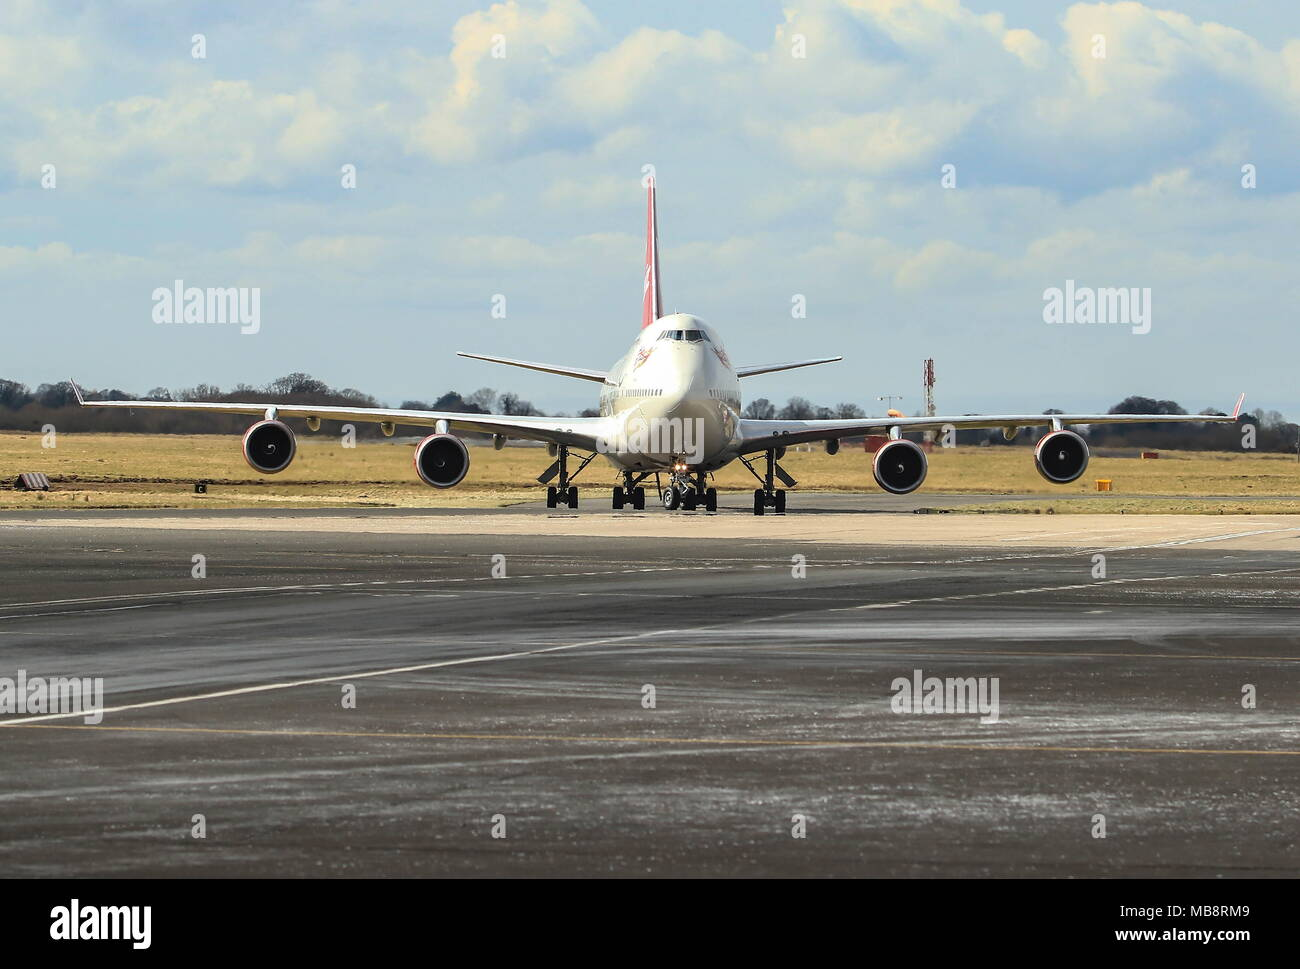 Virgin 747-400 and Easyjet Airbus. - Stock Image